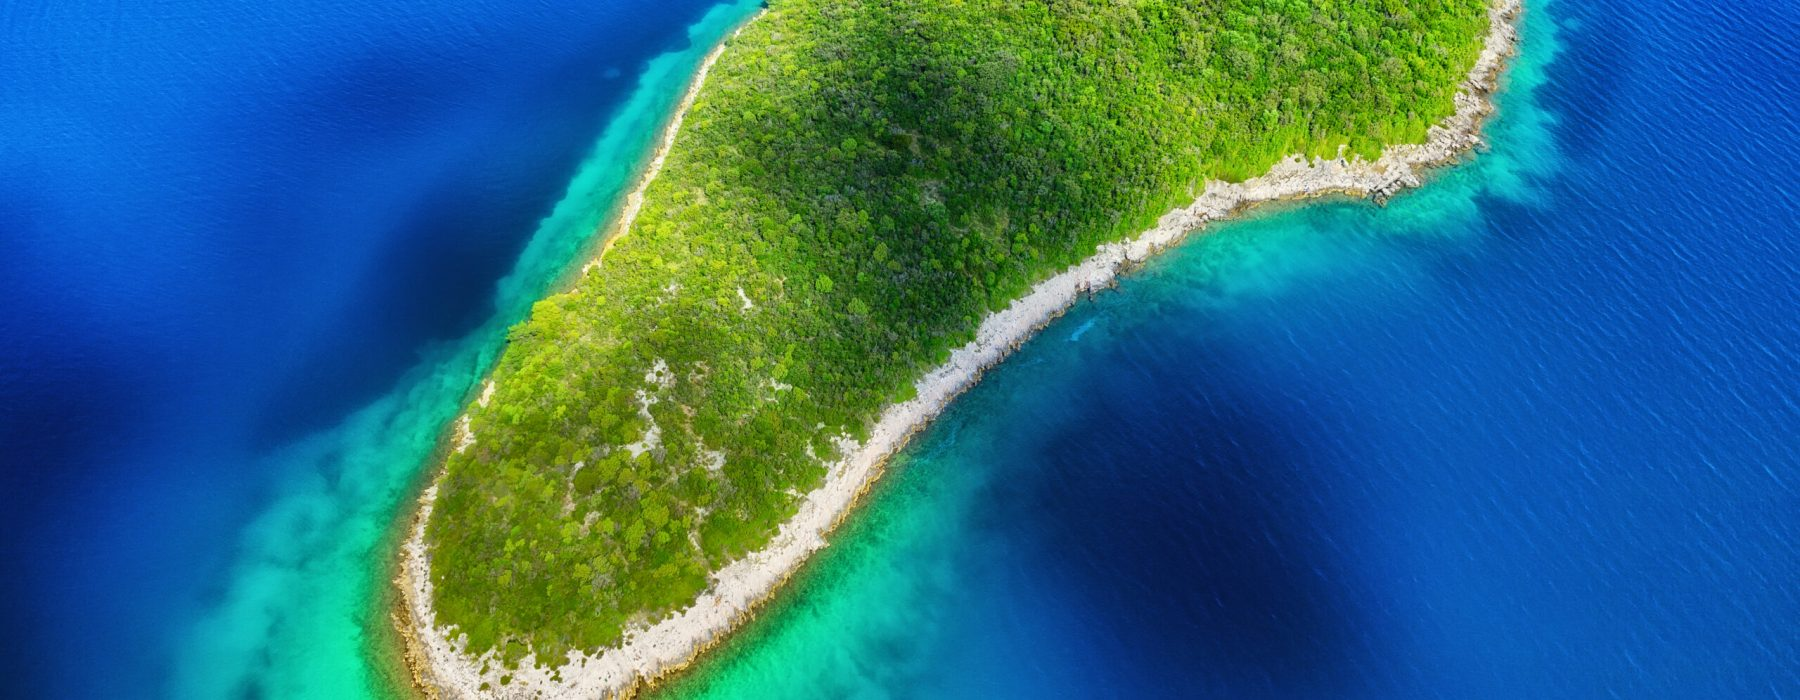 Island in the sea in Croatia. Aerial view on island with forest. Adriatic sea, Croatia. Seascape from drone at the summer time. Travel and holiday